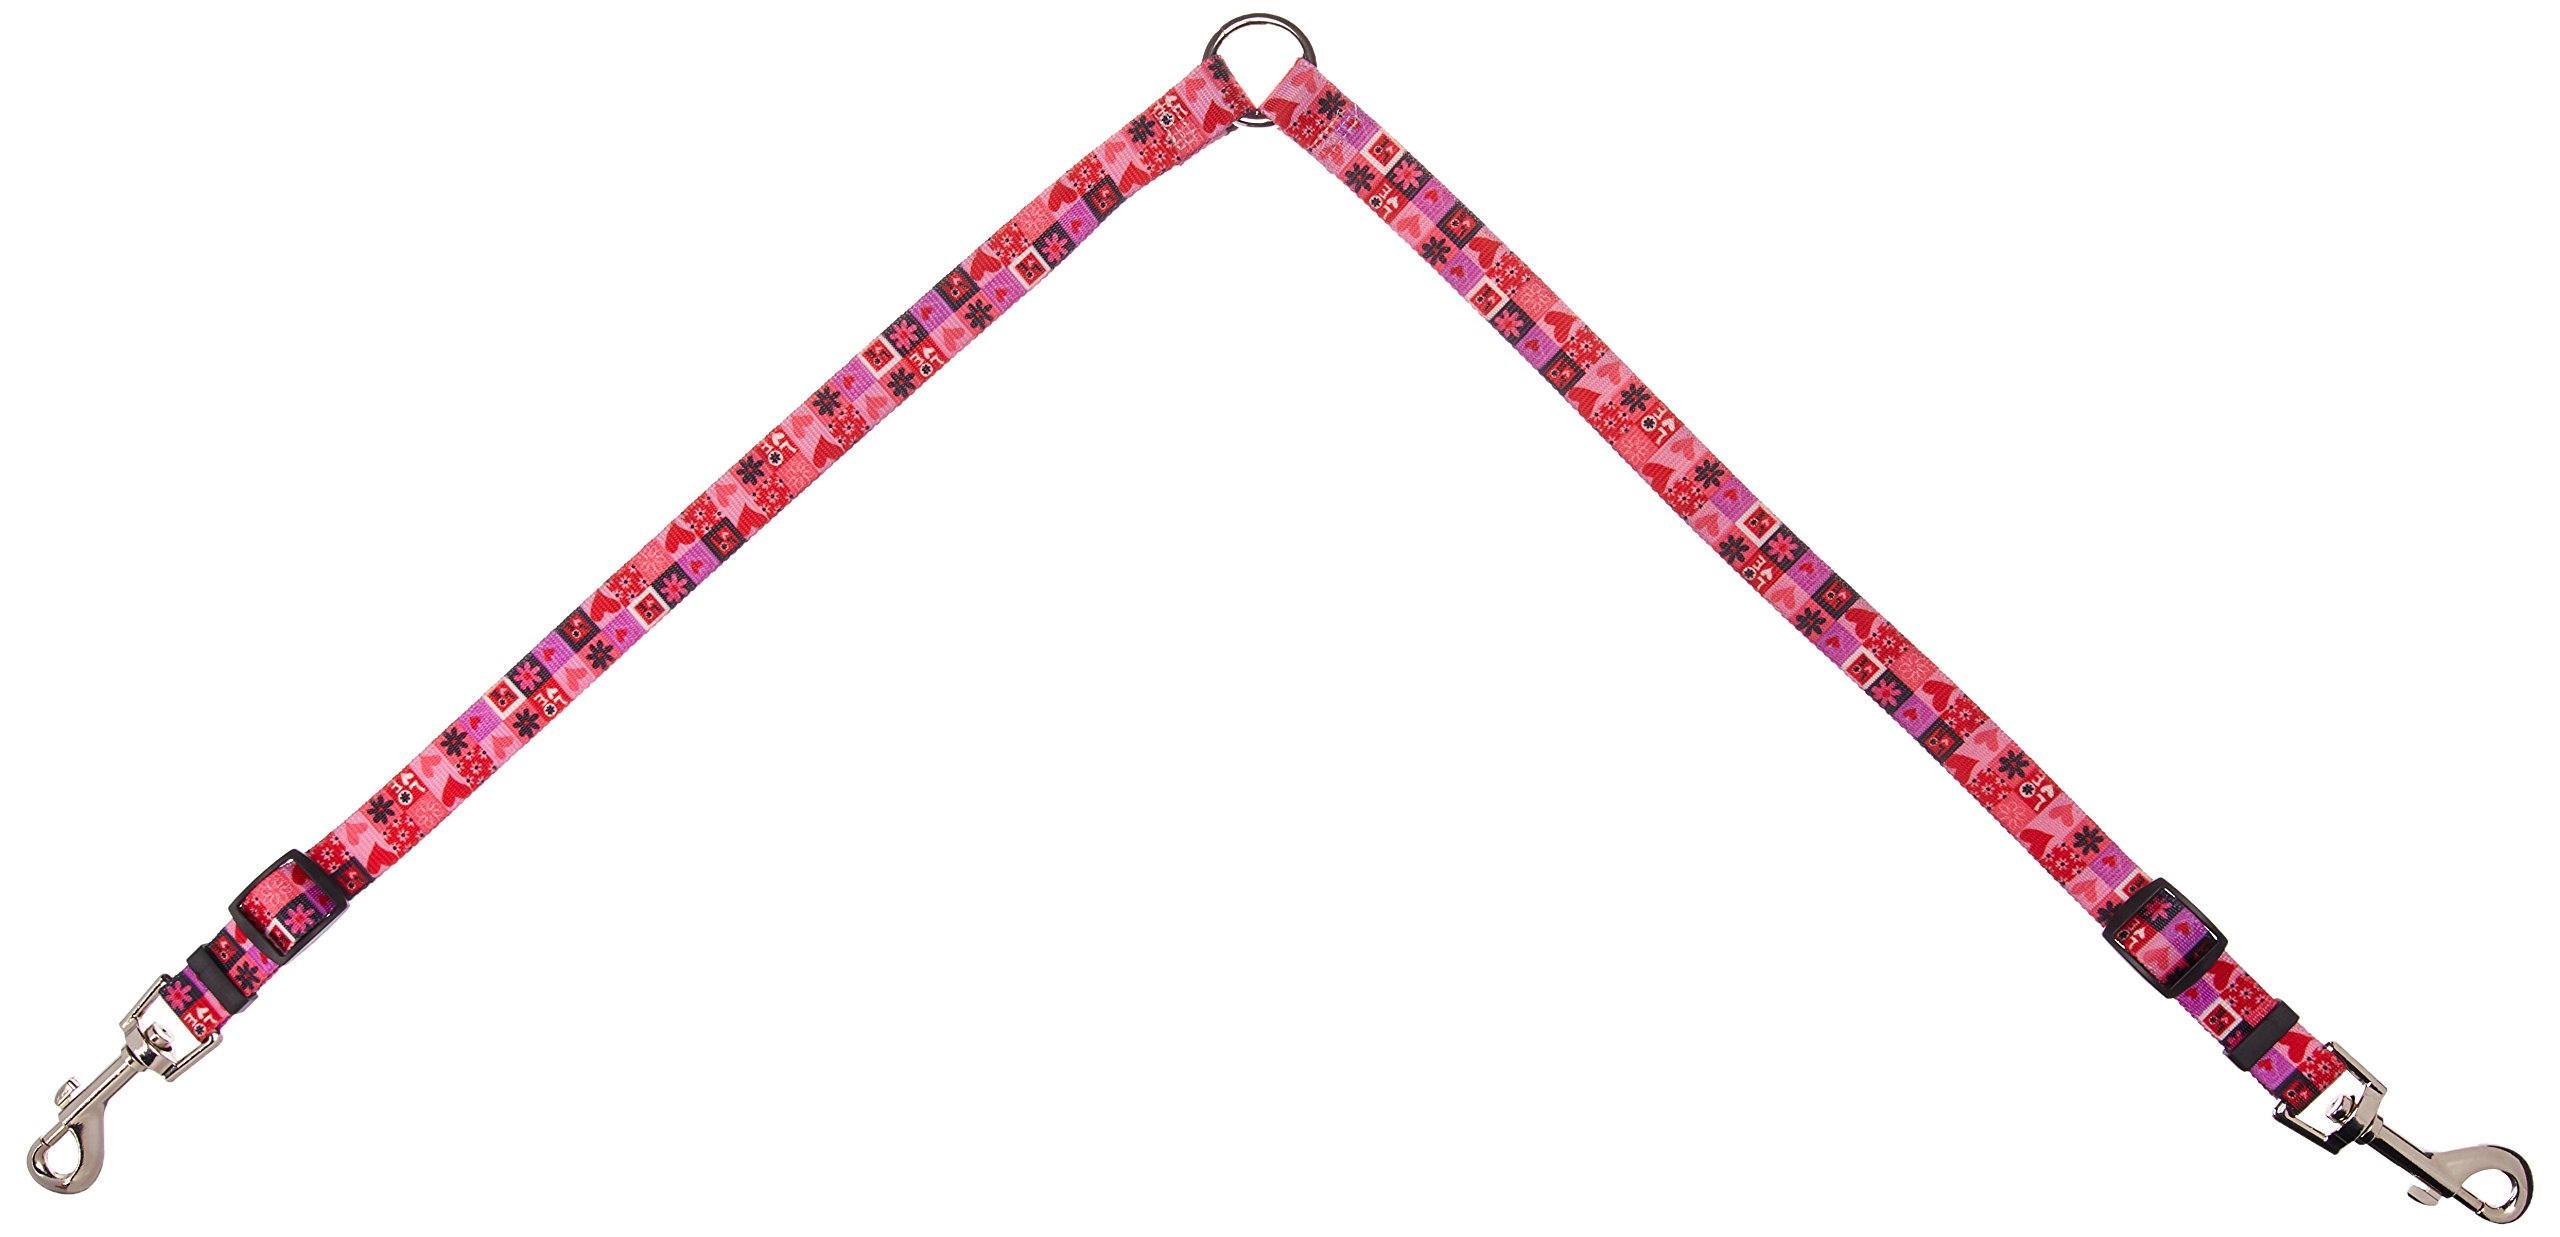 Yellow Dog Design Valentines Blocks Coupler Dog Leash-Size Medium-3/4 inch Wide and 12 to 20 inches Long by Yellow Dog Design